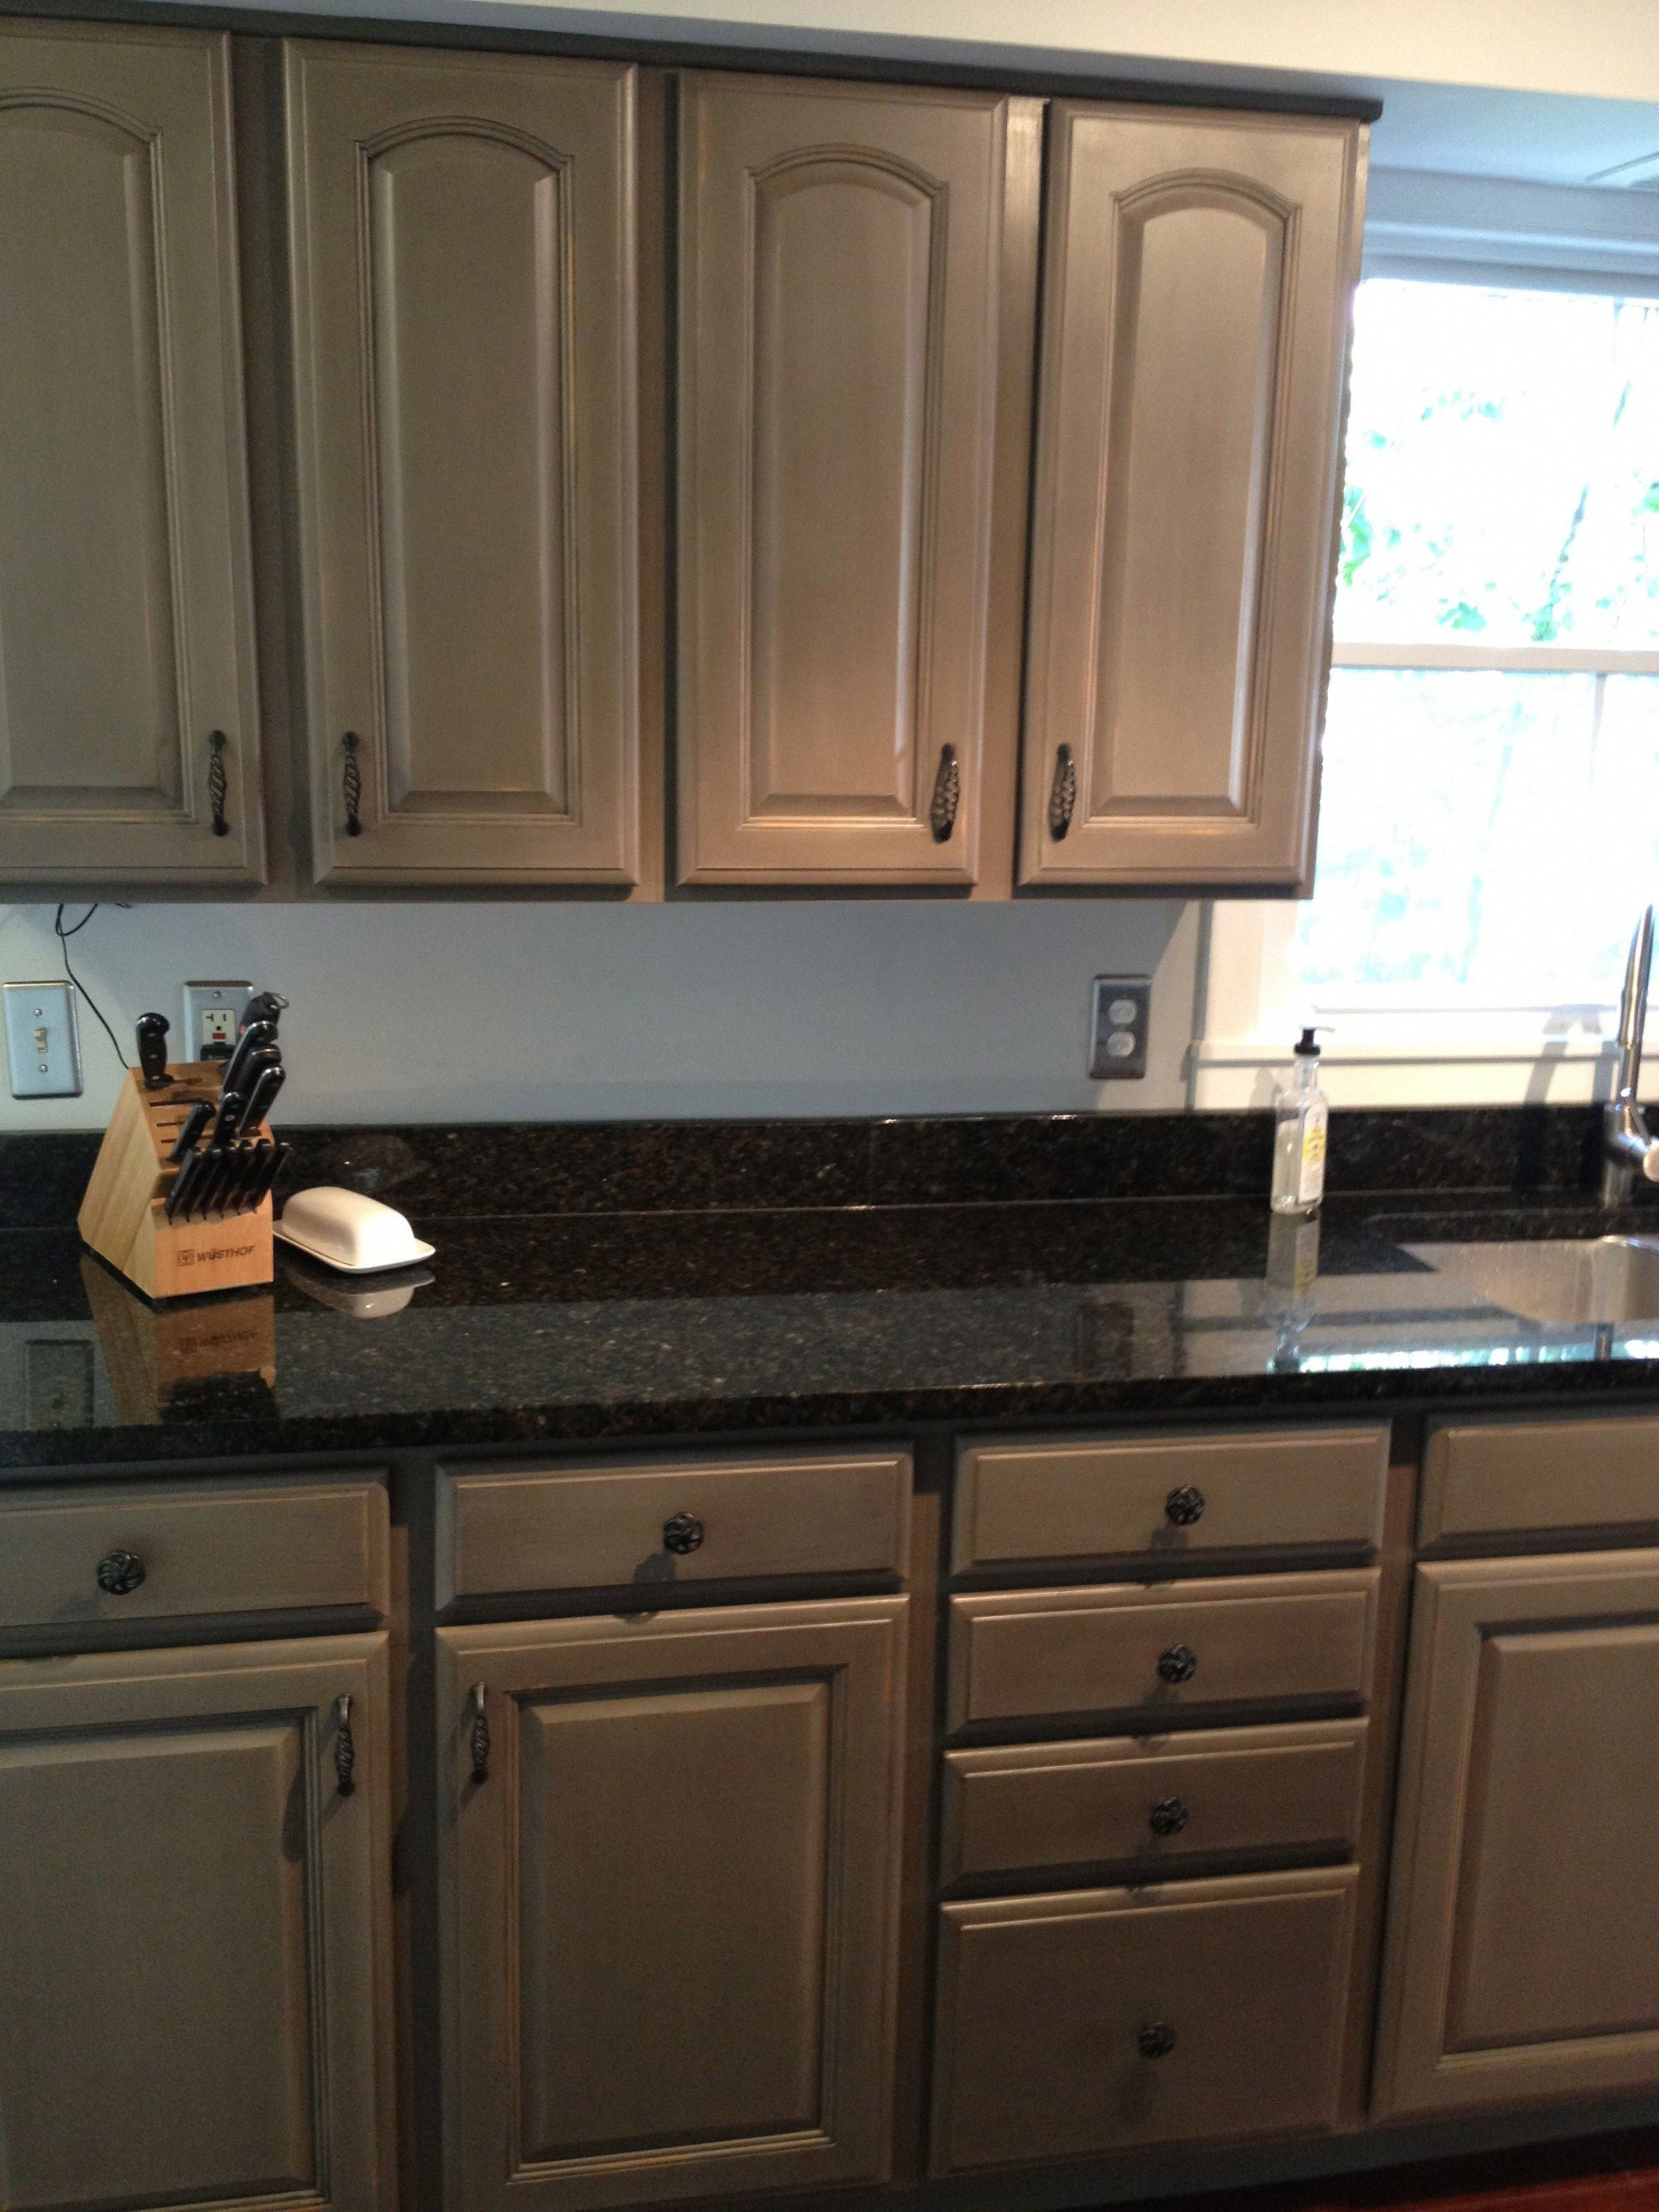 We Just Finished Painting Kitchen Cabinets Using Annie Sloan Chalk Paint In French Li Kitchen Cabinet Remodel Chalk Paint Kitchen Cabinets Diy Kitchen Cabinets